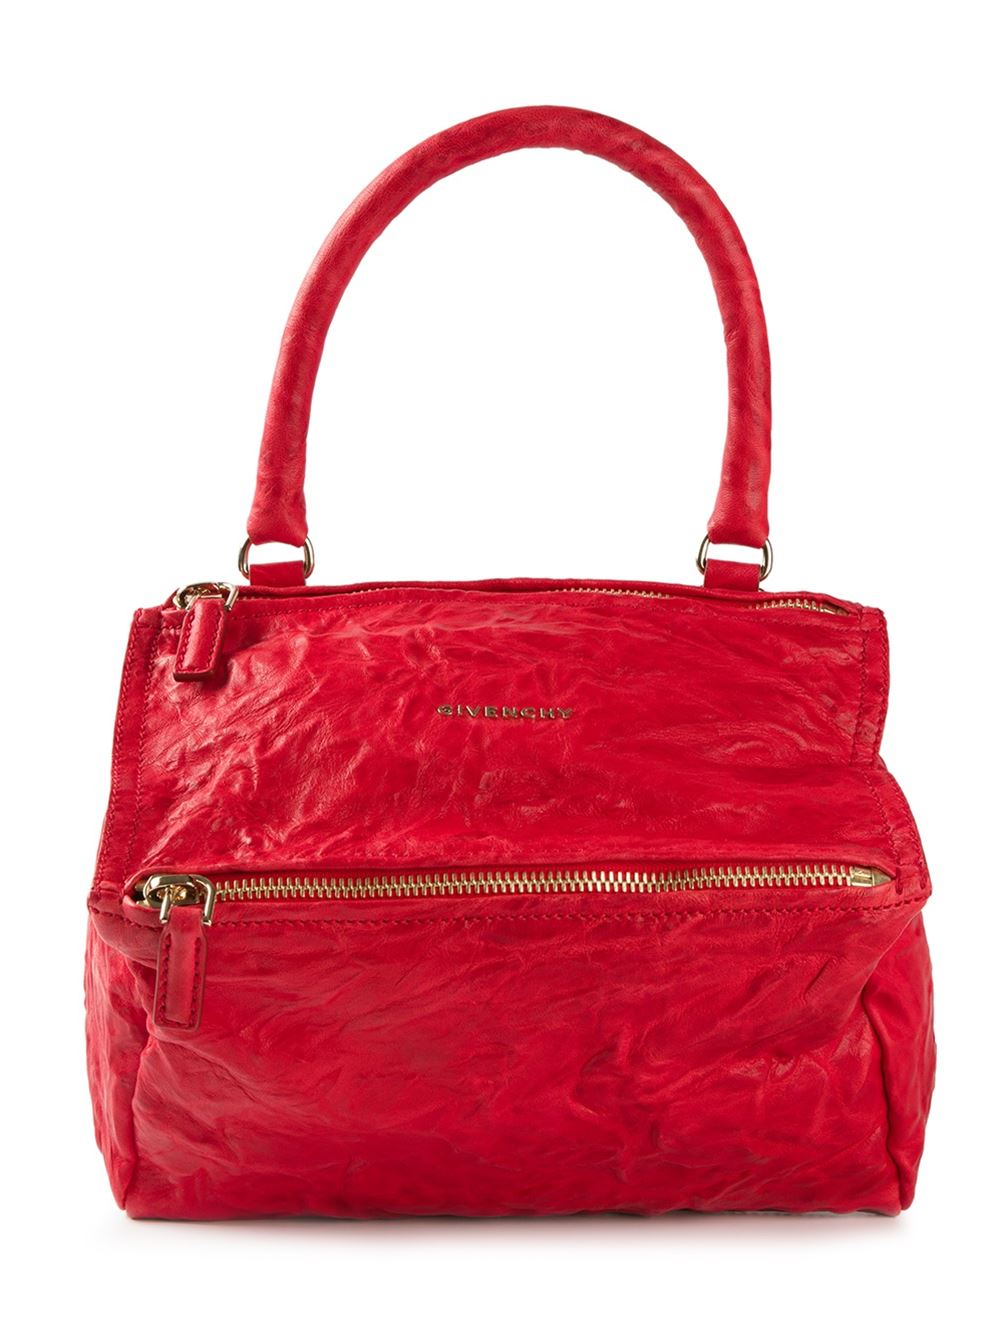 8016b1e5720f2 Givenchy Small Pandora Tote in Red